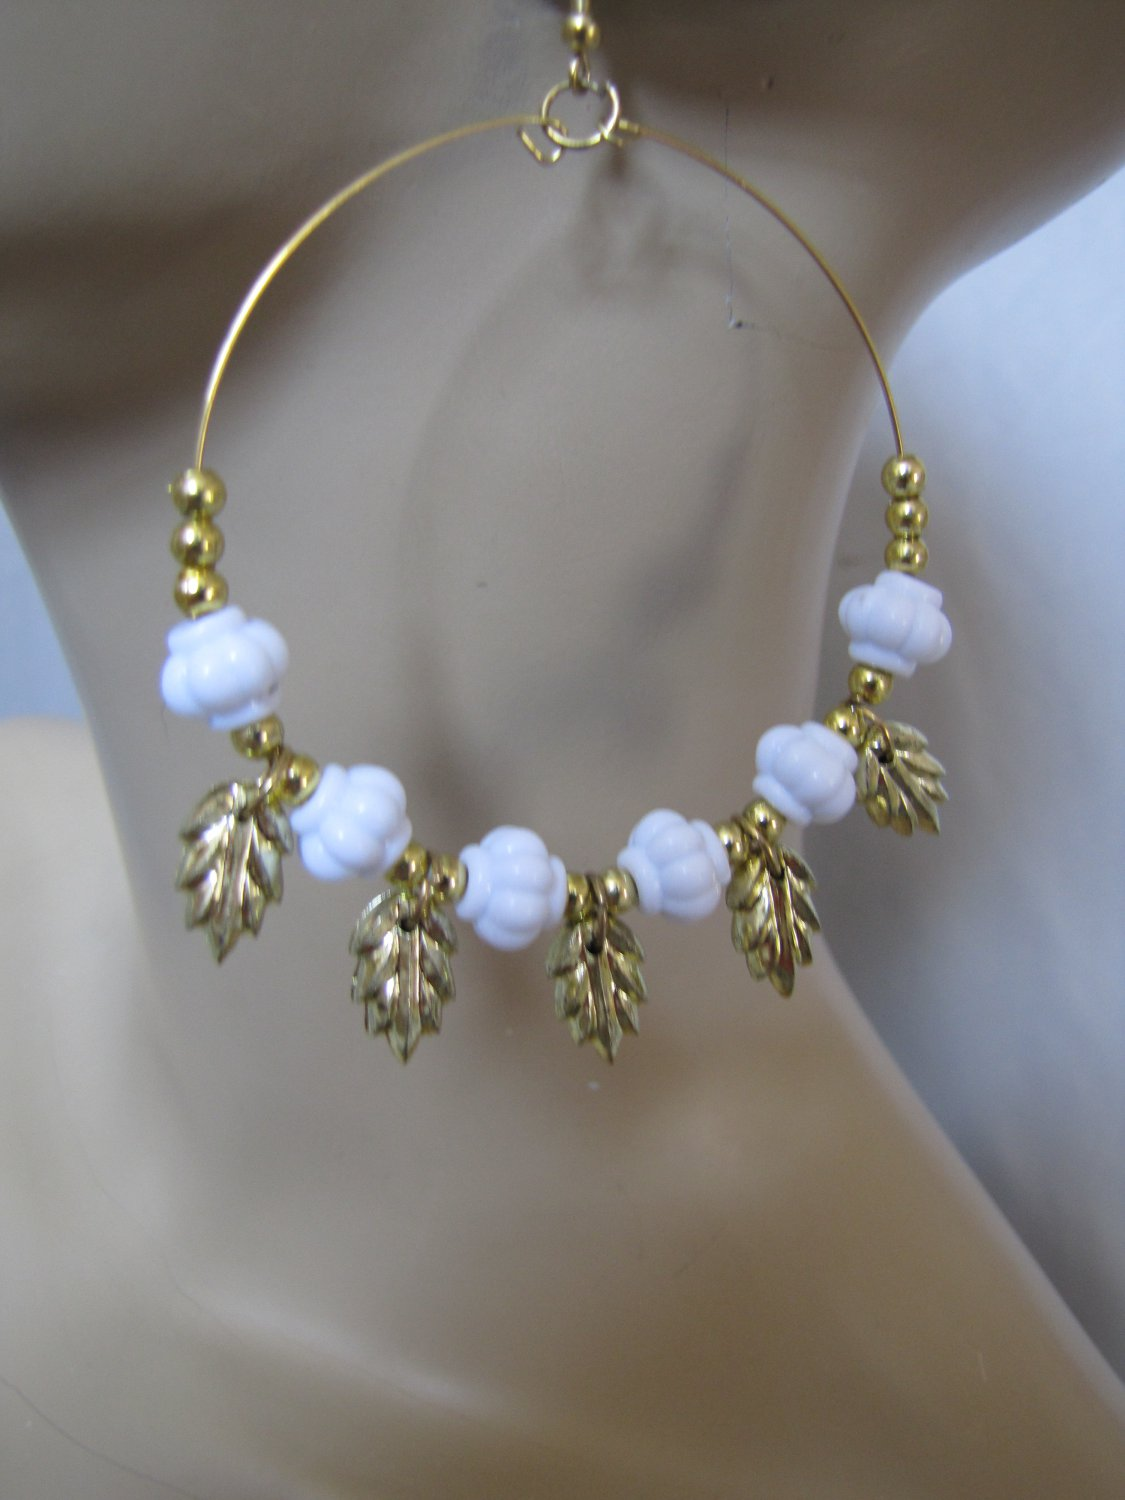 Fashion Hoop Earrings with White Beads & Leaf Detail